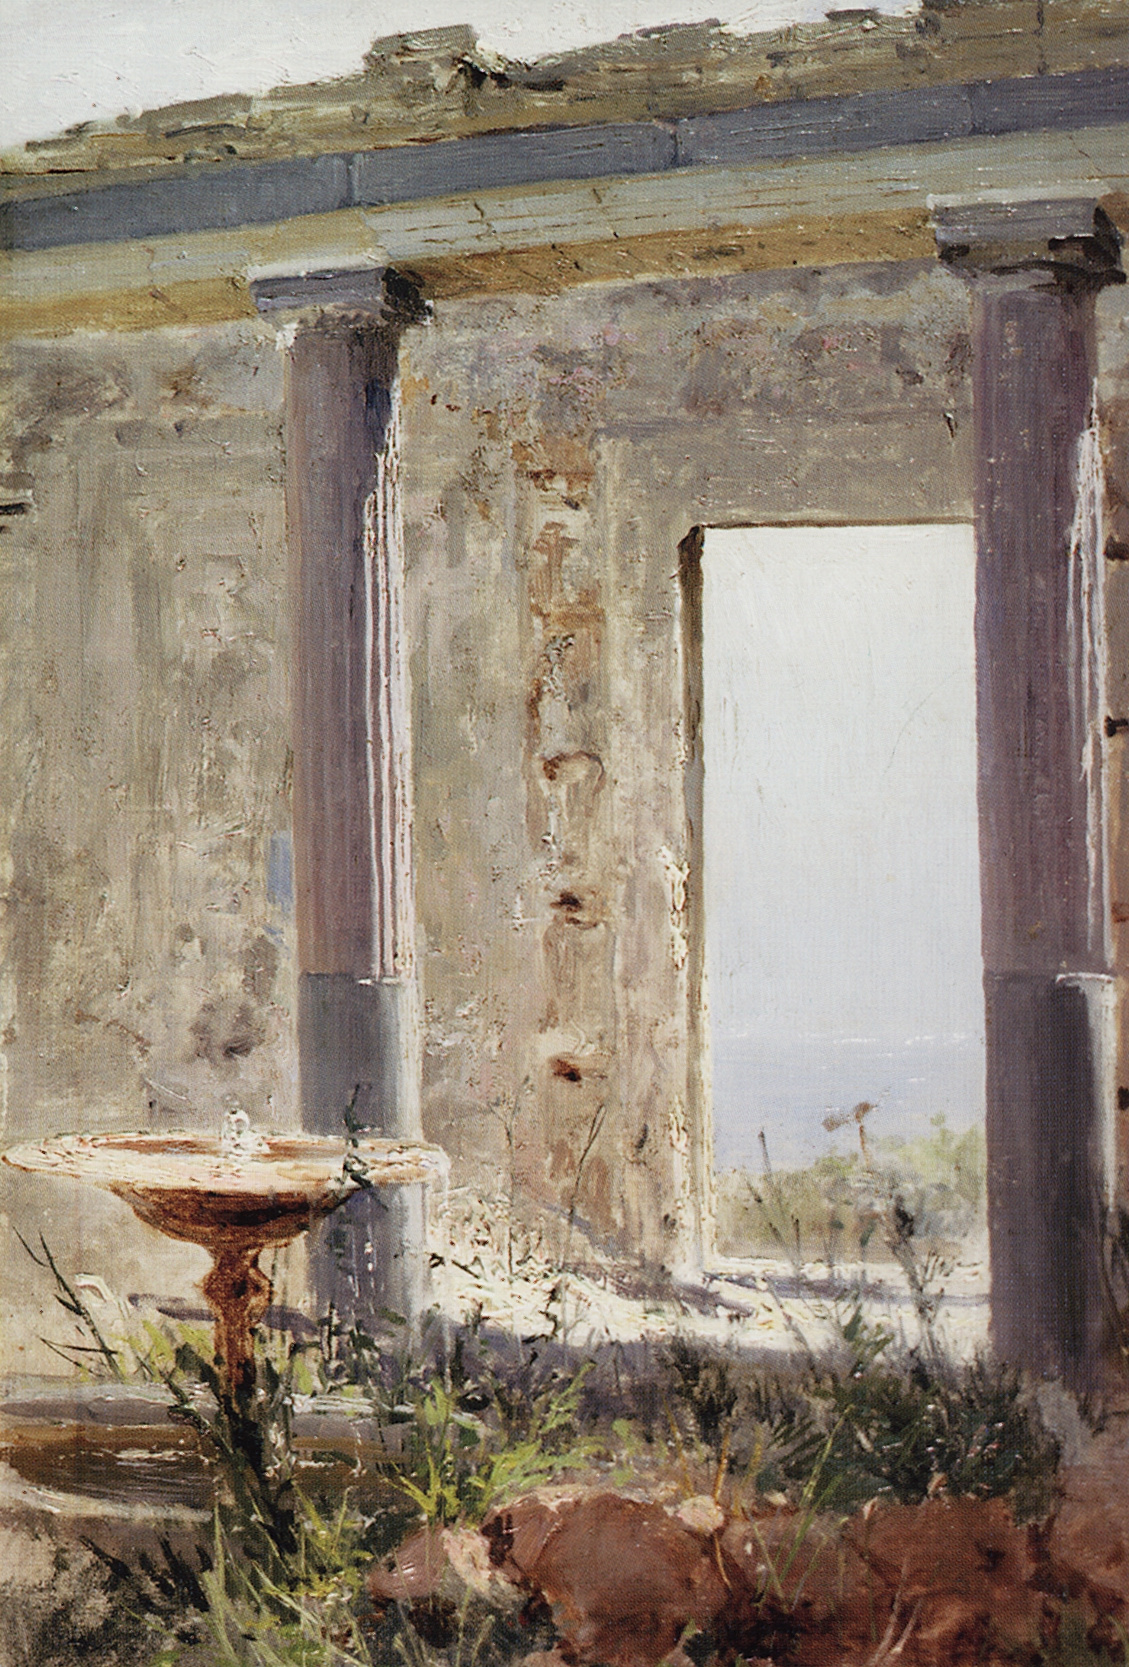 Vasily Polenov. Ruins of a palace in Palestine